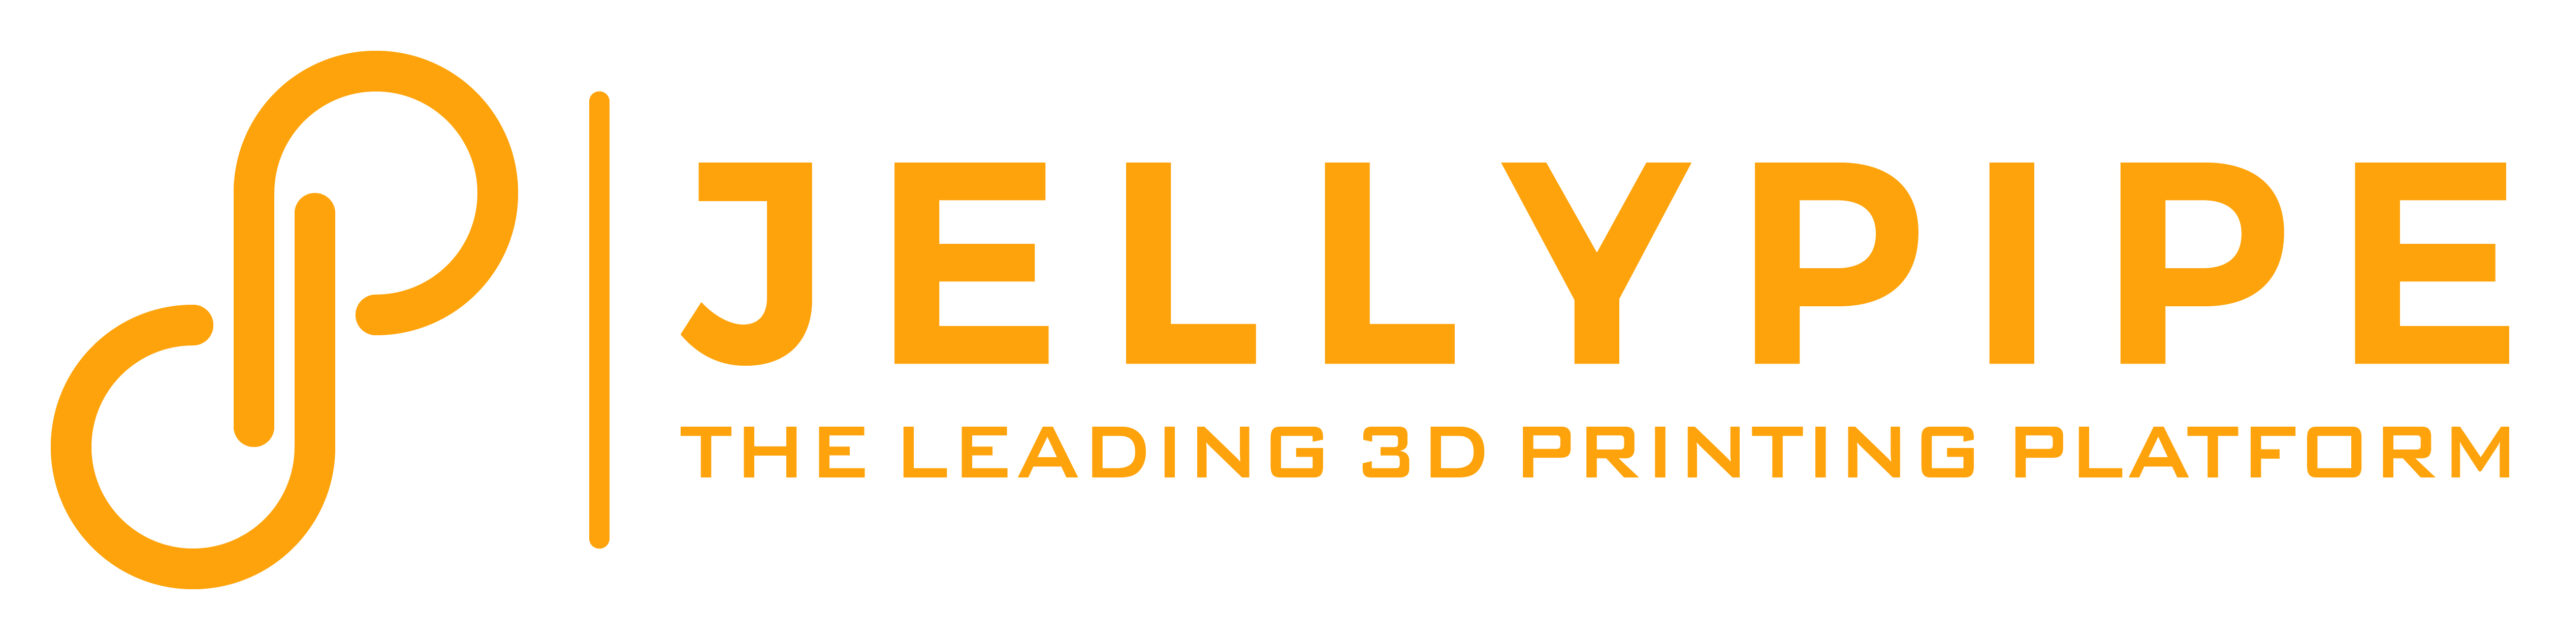 Jellypipe GmbH